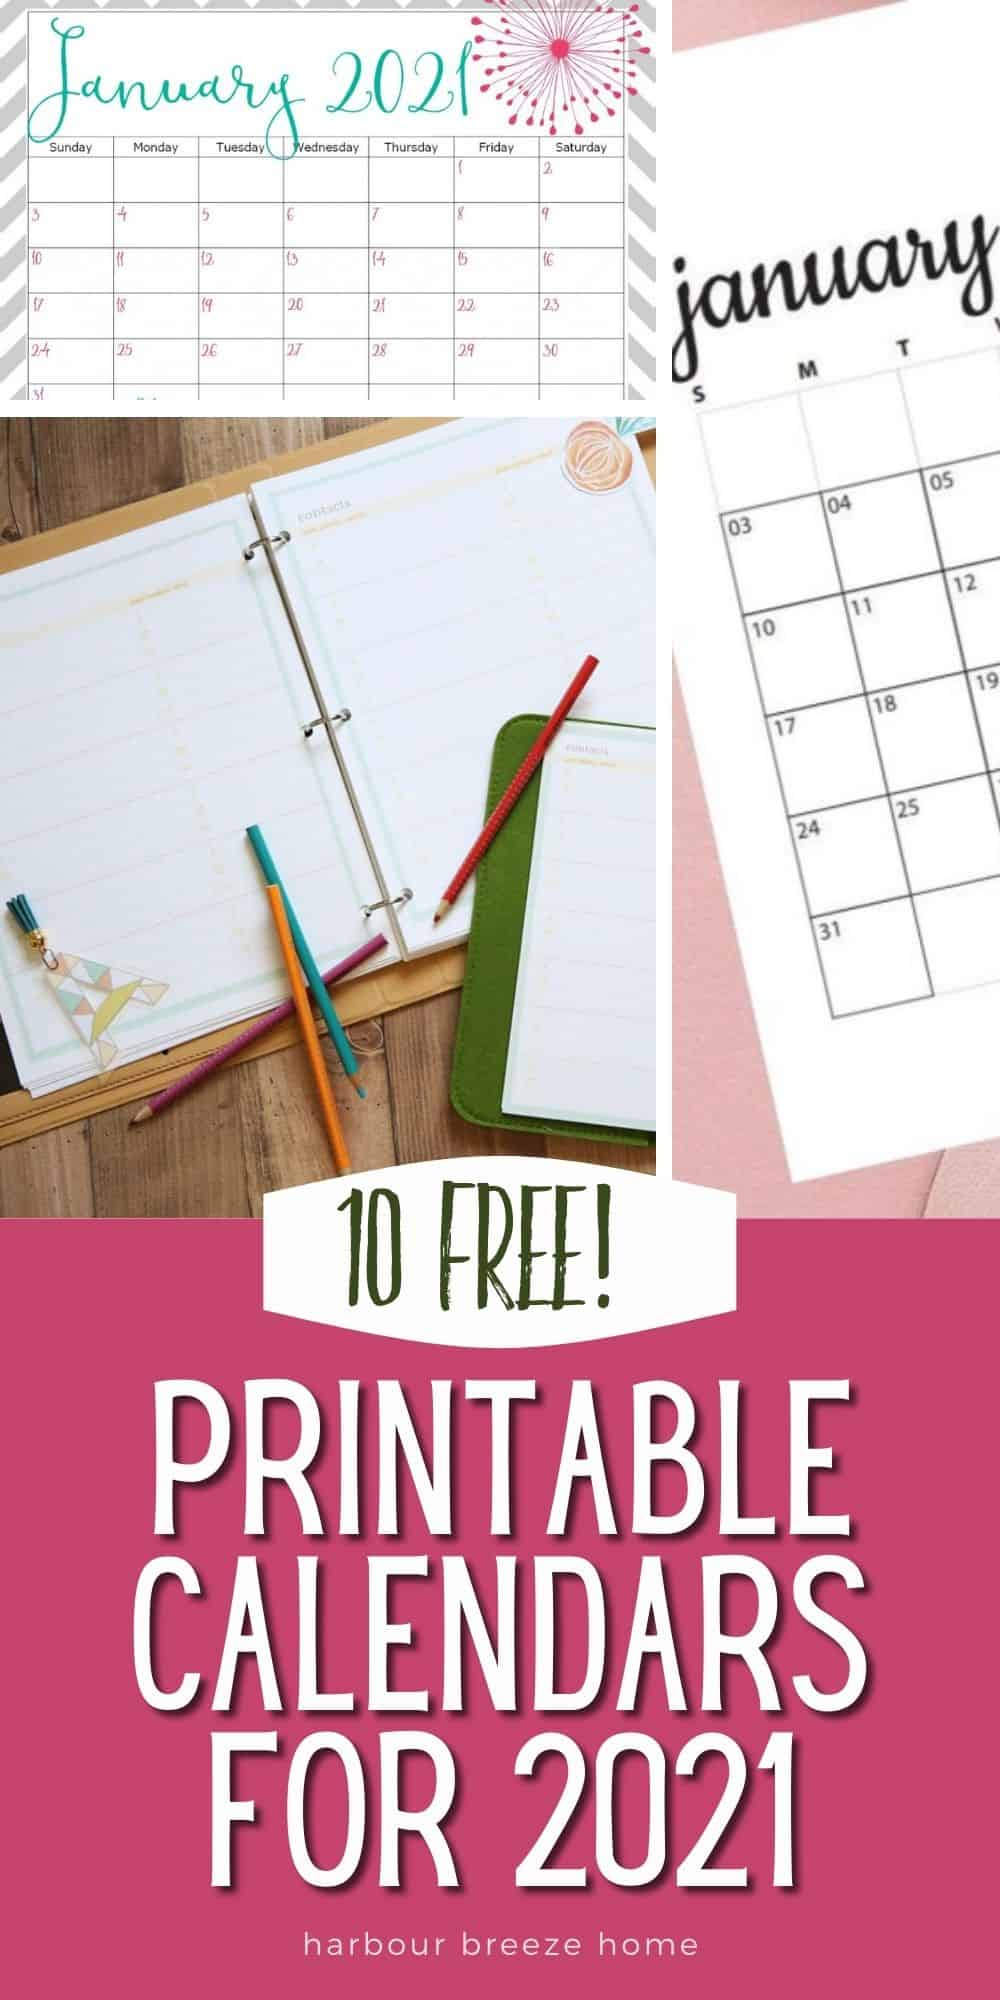 10 free printable calendars for 2021 that can be printed on your home printer.